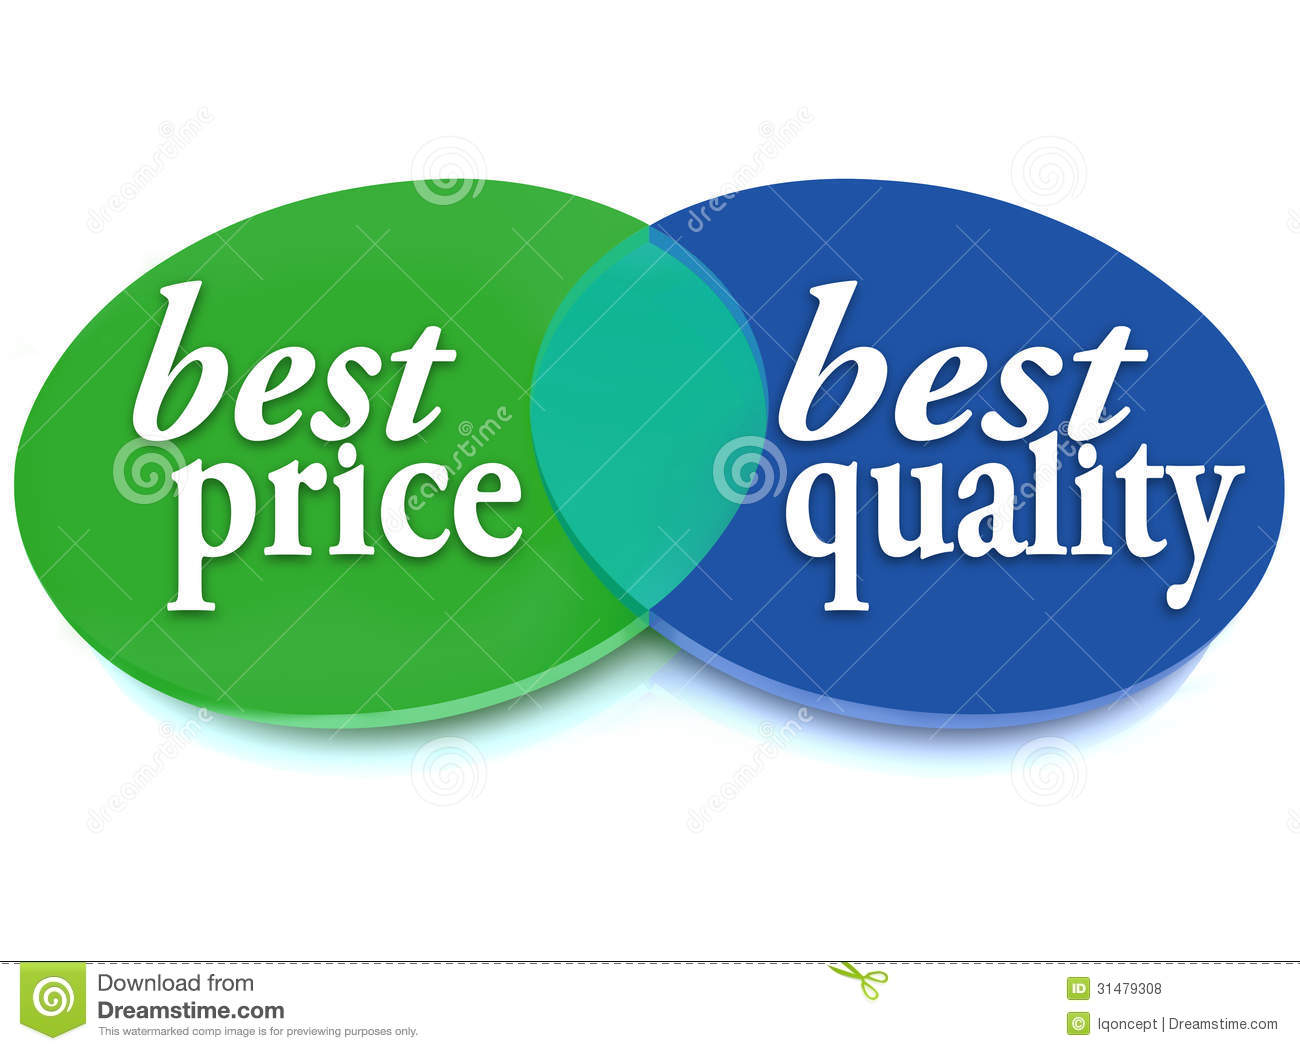 vector venn diagram emg wiring best price and quality comparison ideal buy stock illustration - of ...